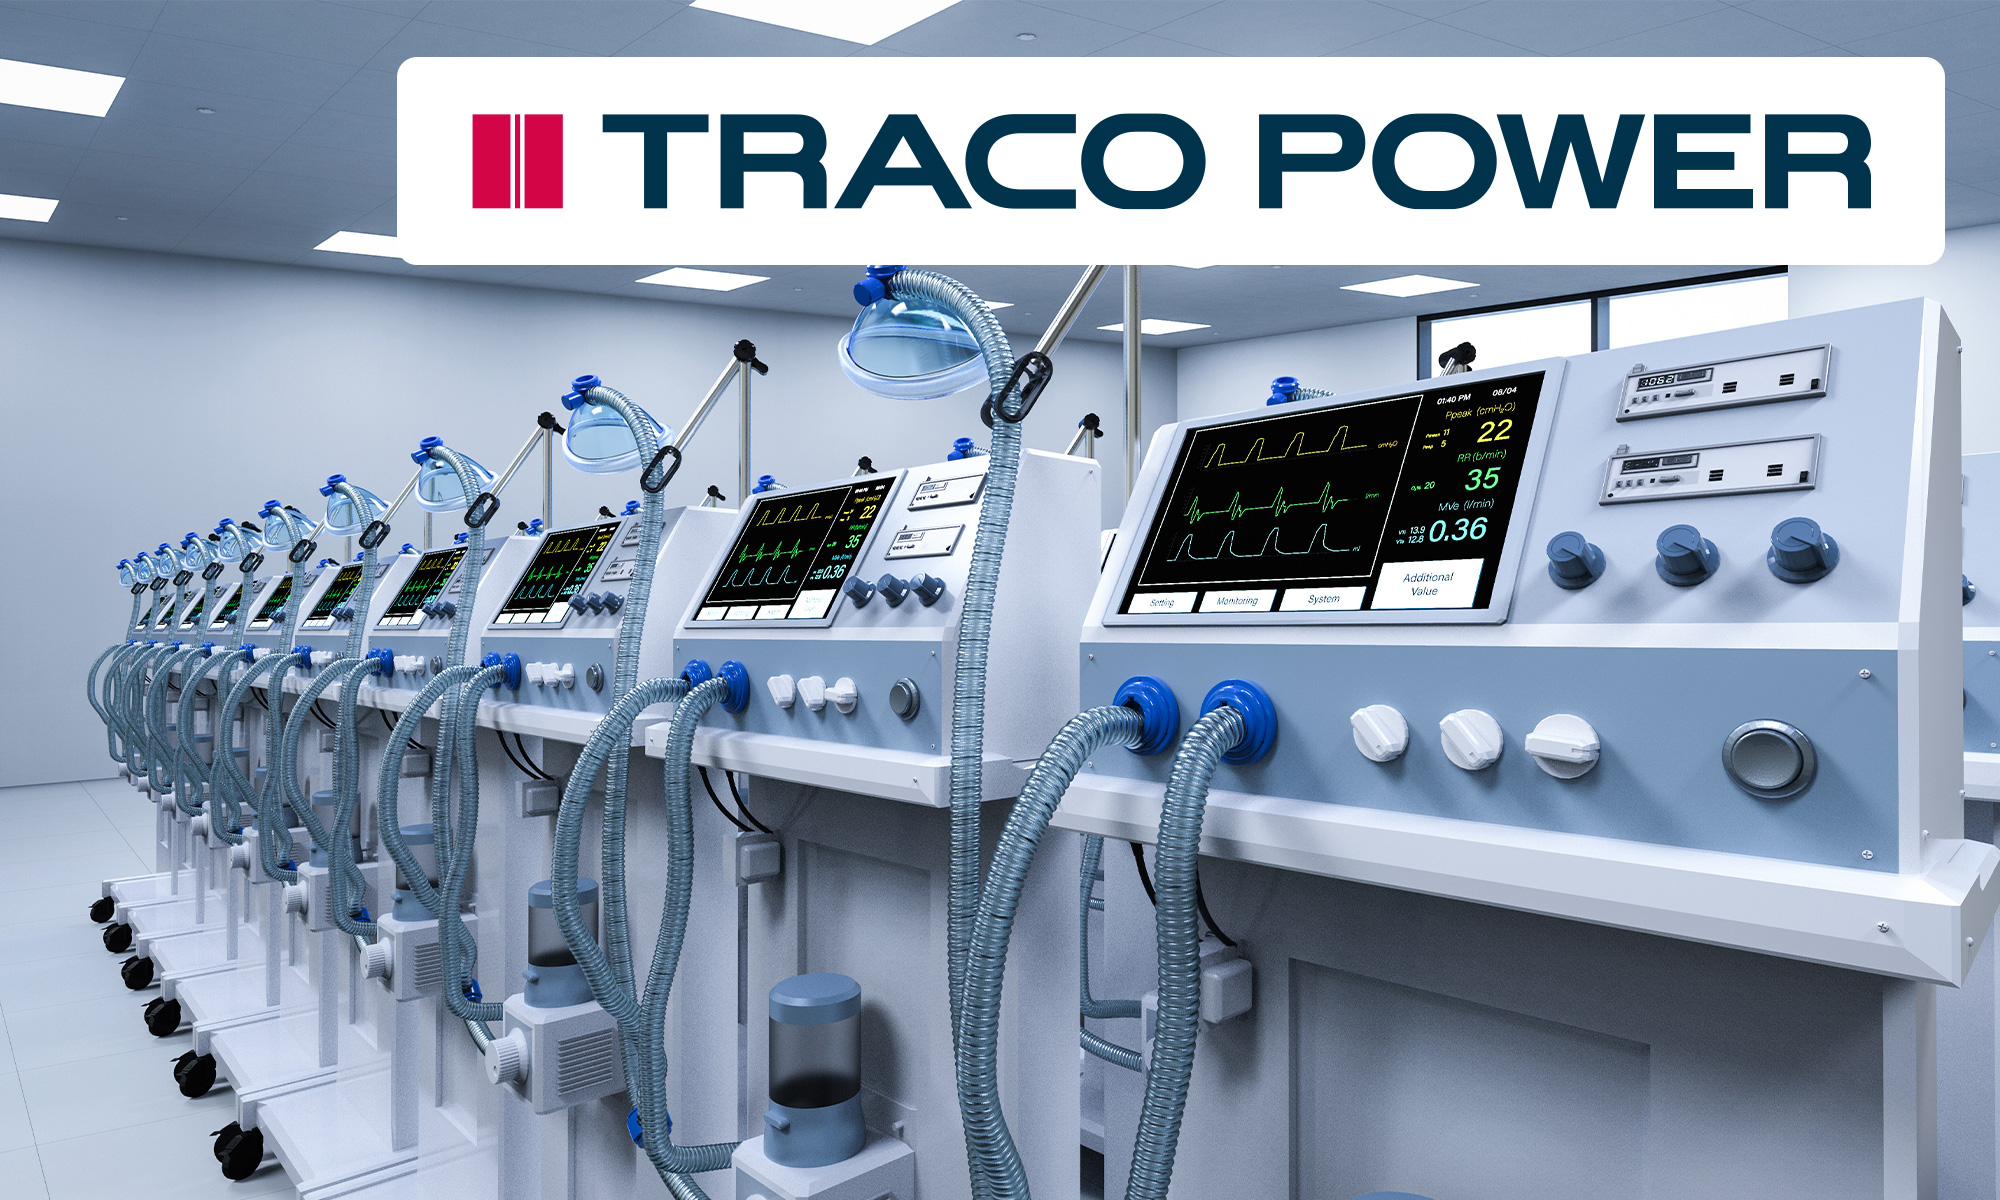 Power supply for medical devices - compliance with the standard ensures safety